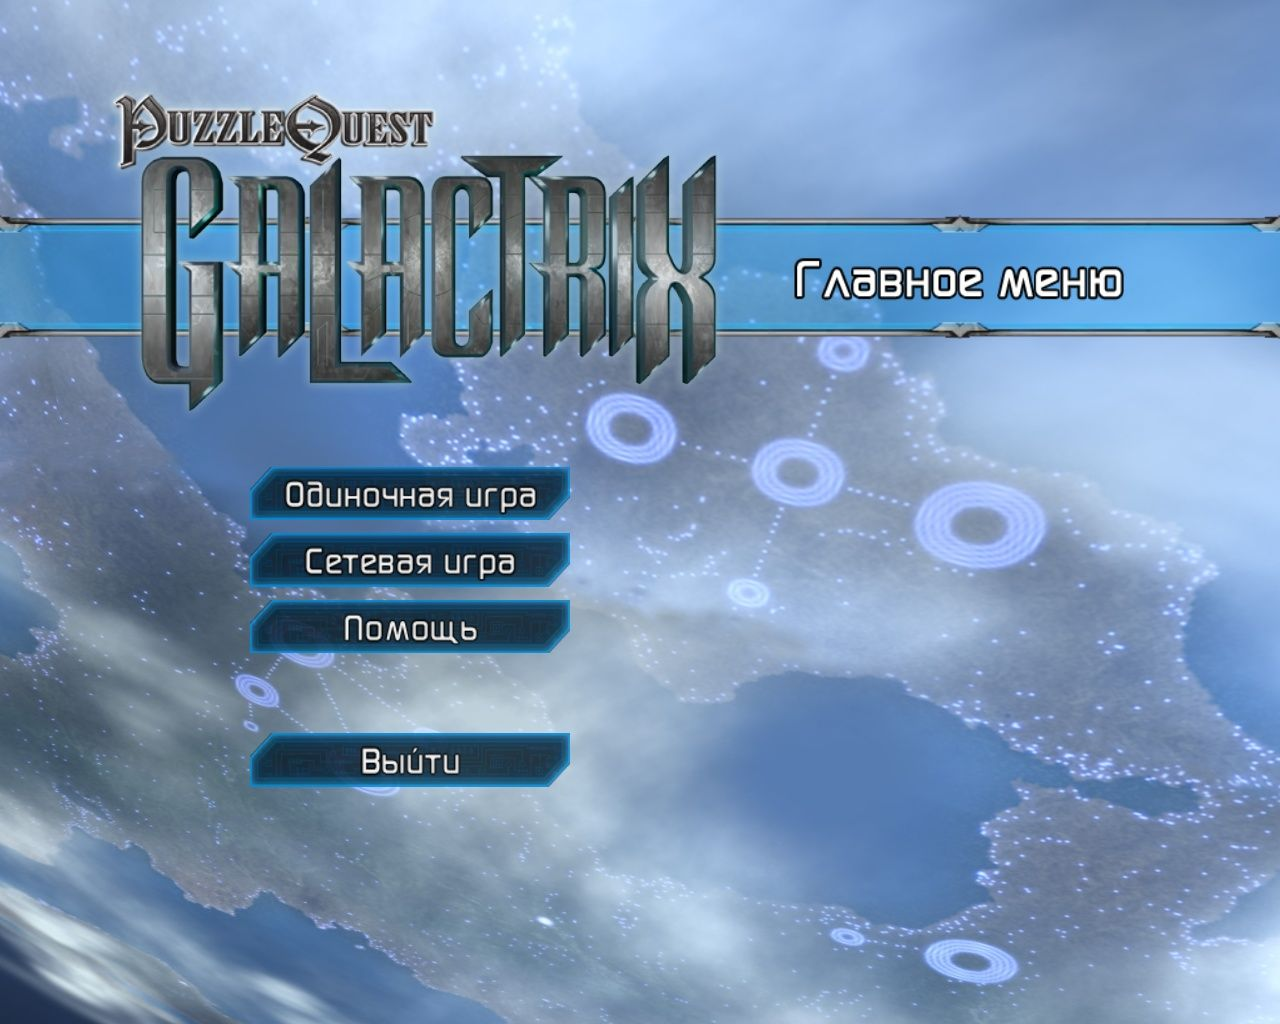 Puzzle Quest: Galactrix Windows Main Menu (Russian version)